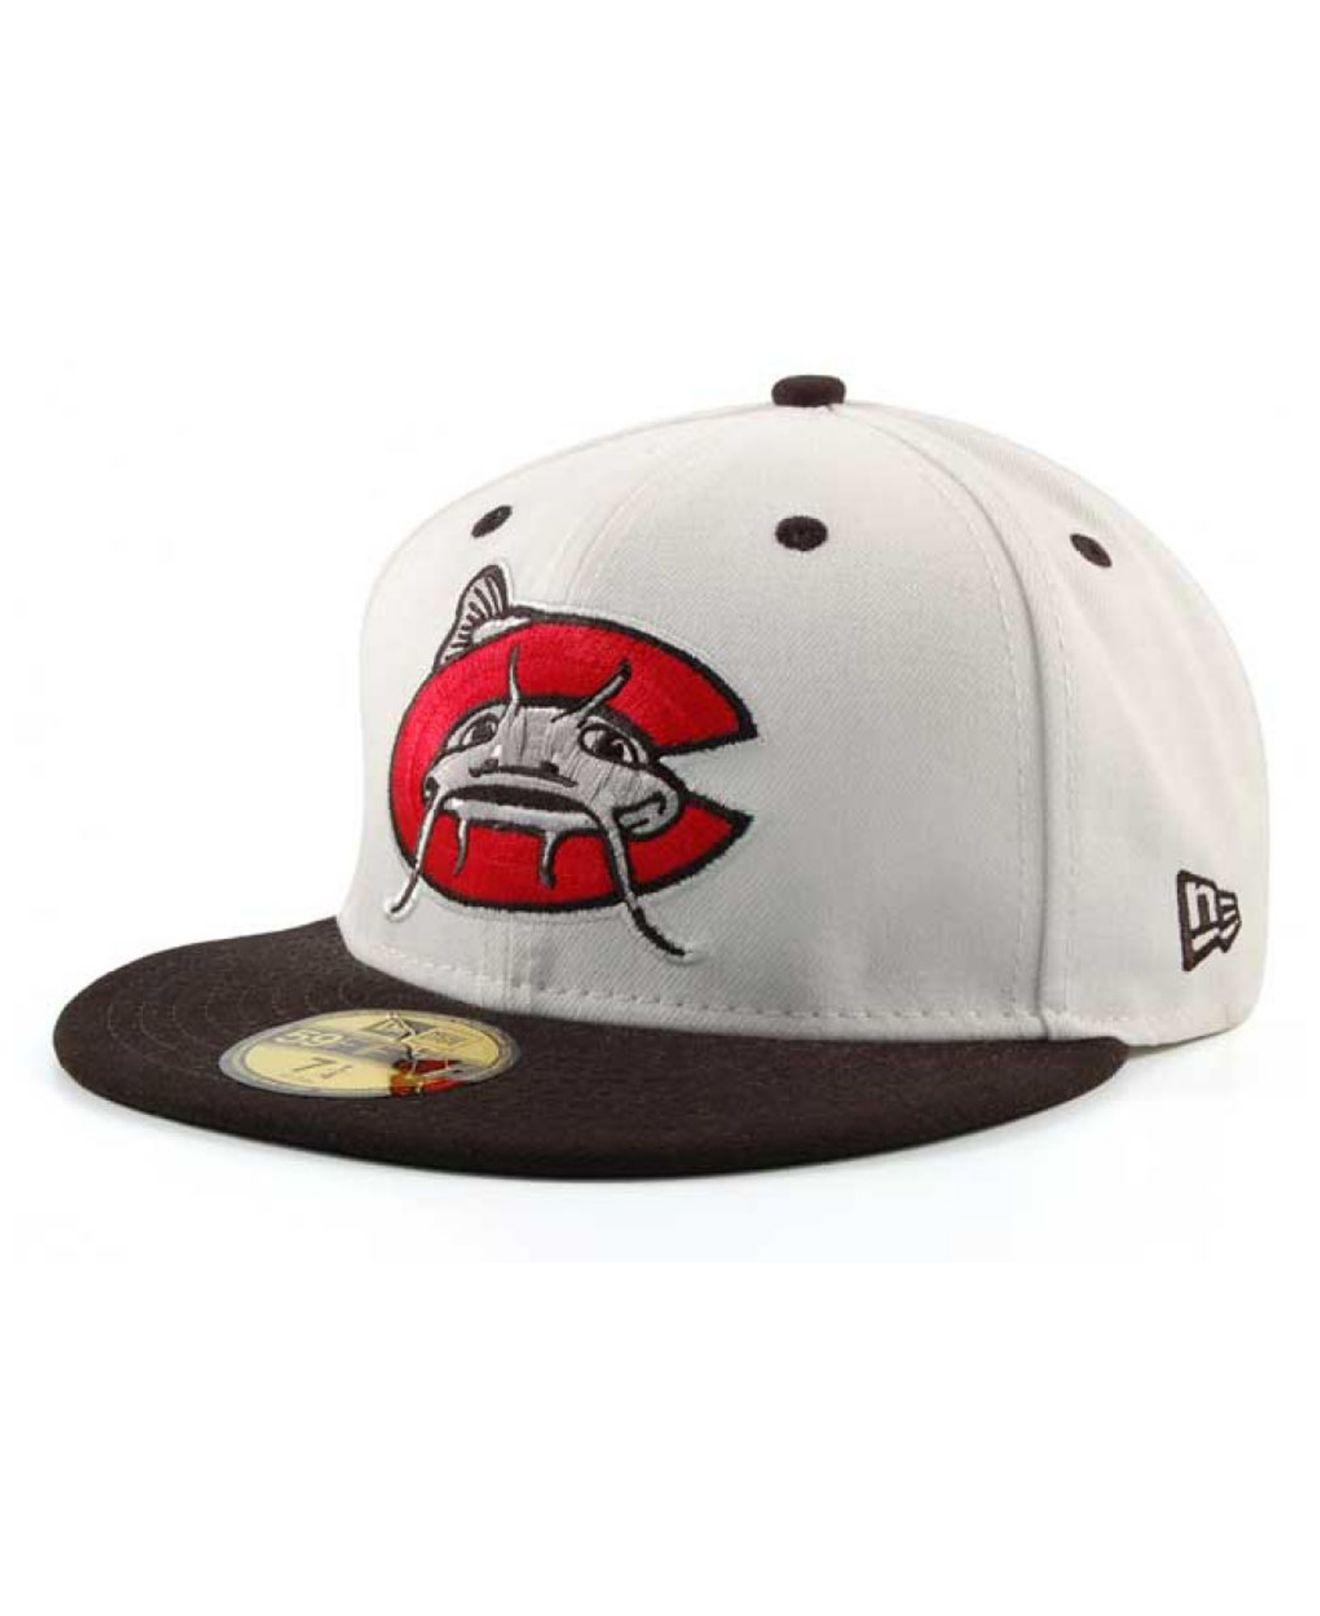 online retailer aef9a c7dc4 KTZ - White Carolina Mudcats Ac 59fifty Fitted Cap for Men - Lyst. View  fullscreen